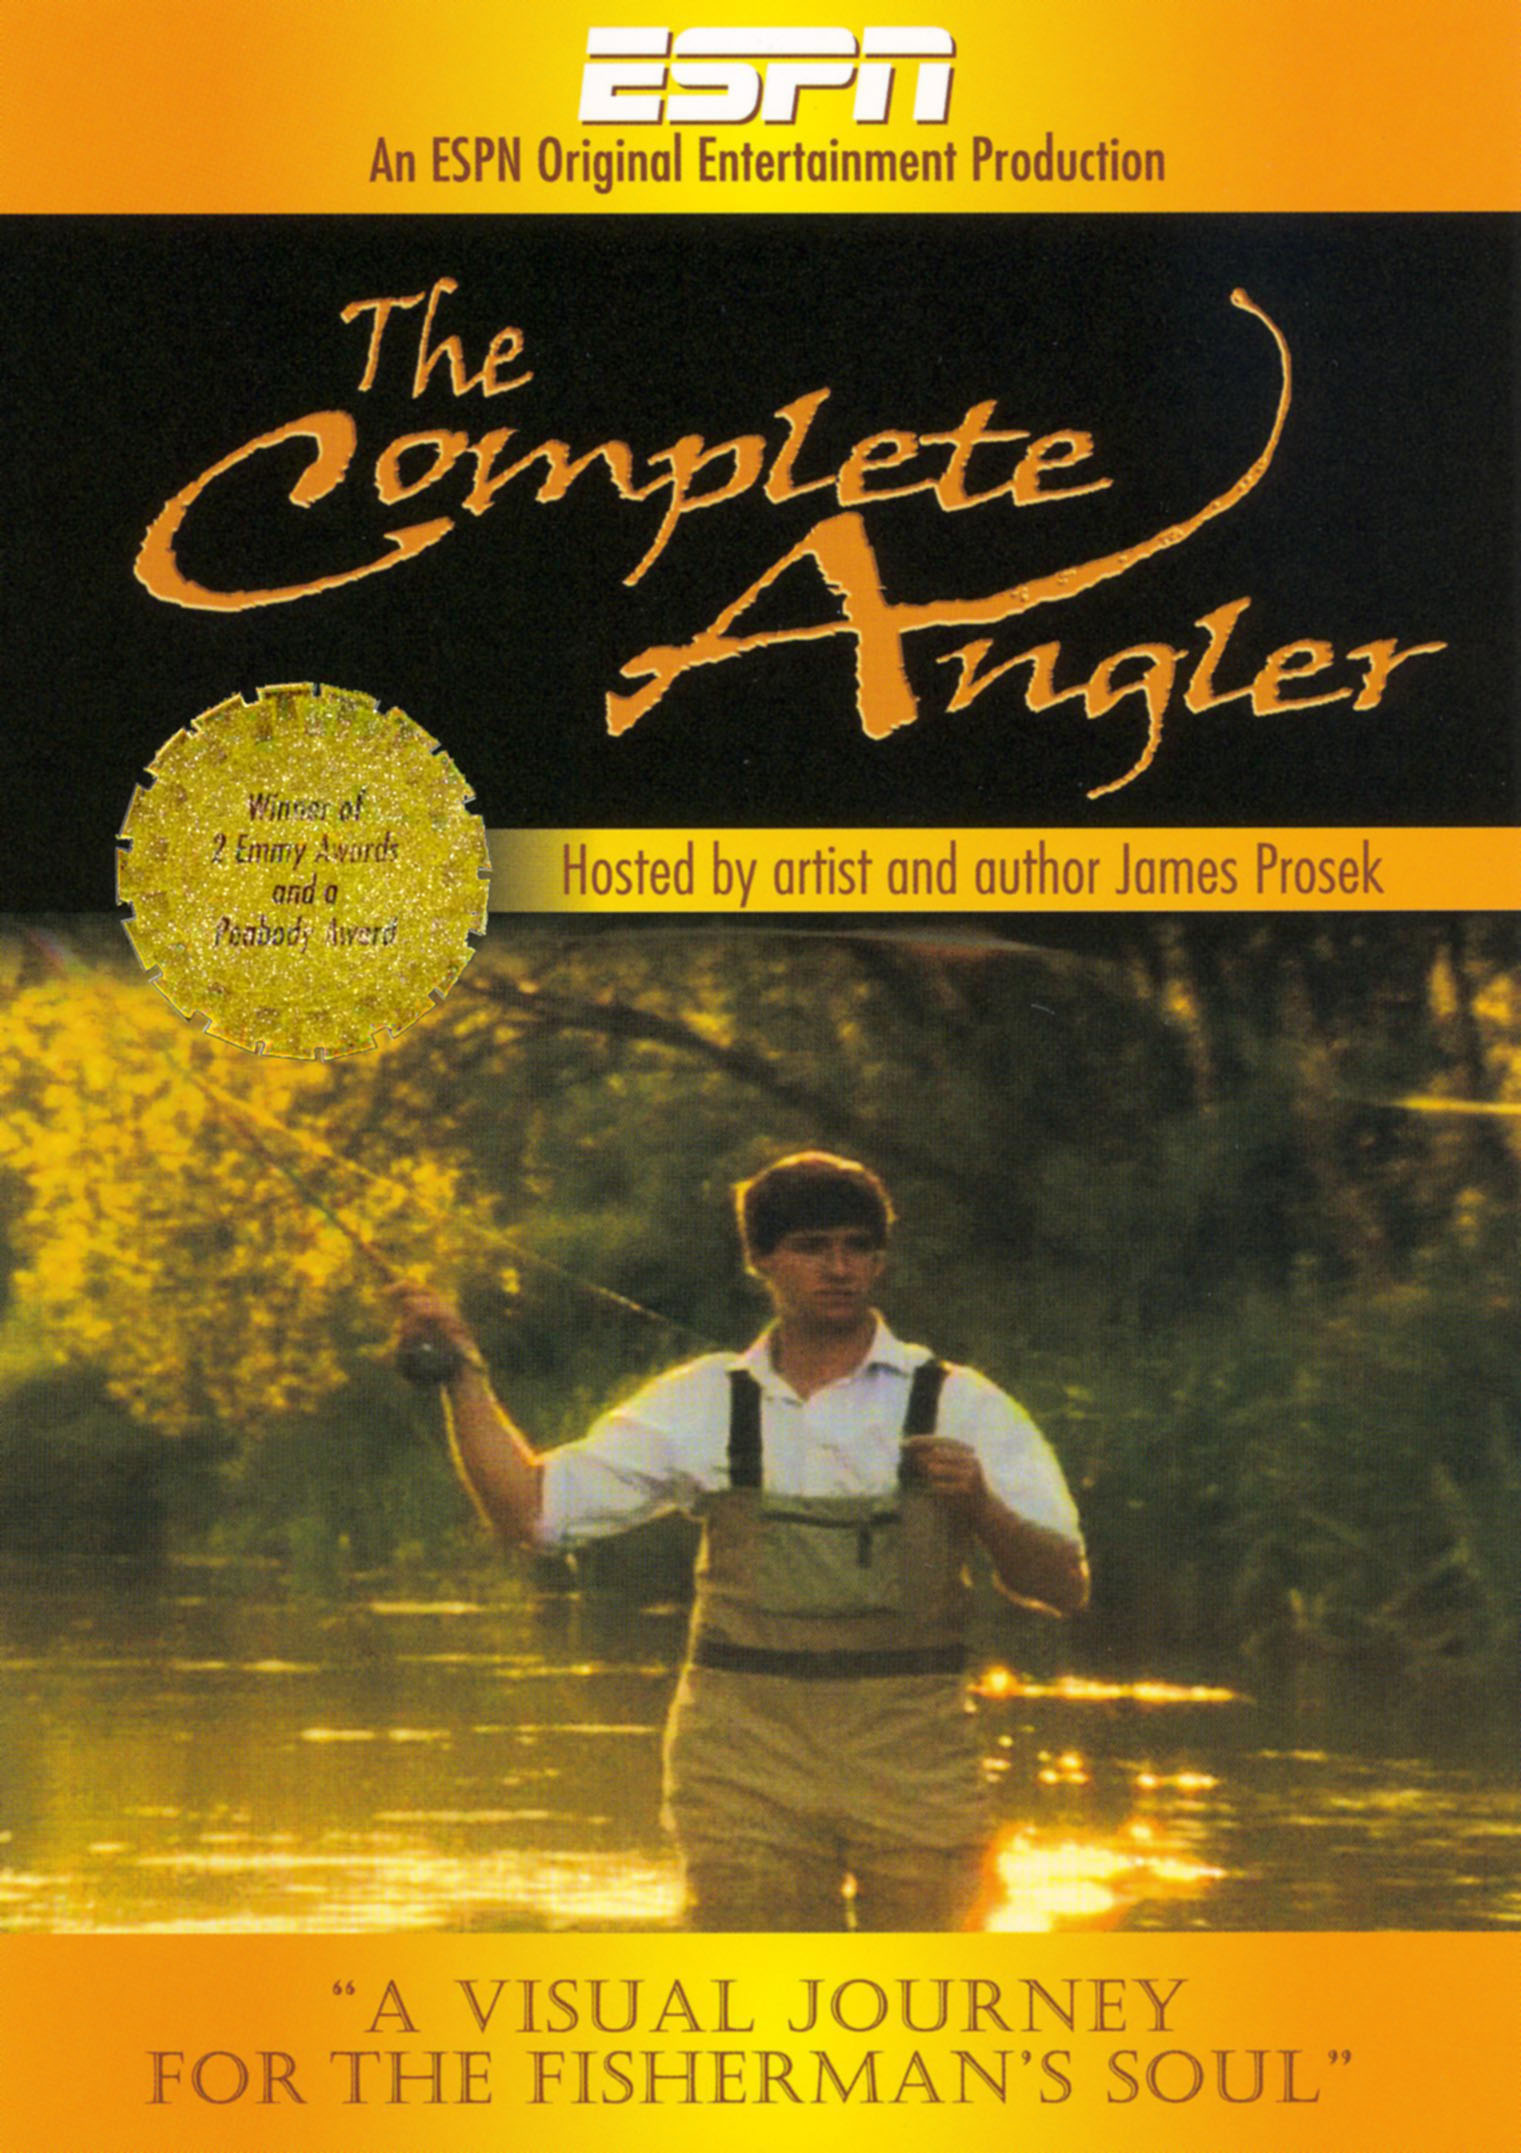 ESPN Original Programming: The Complete Angler